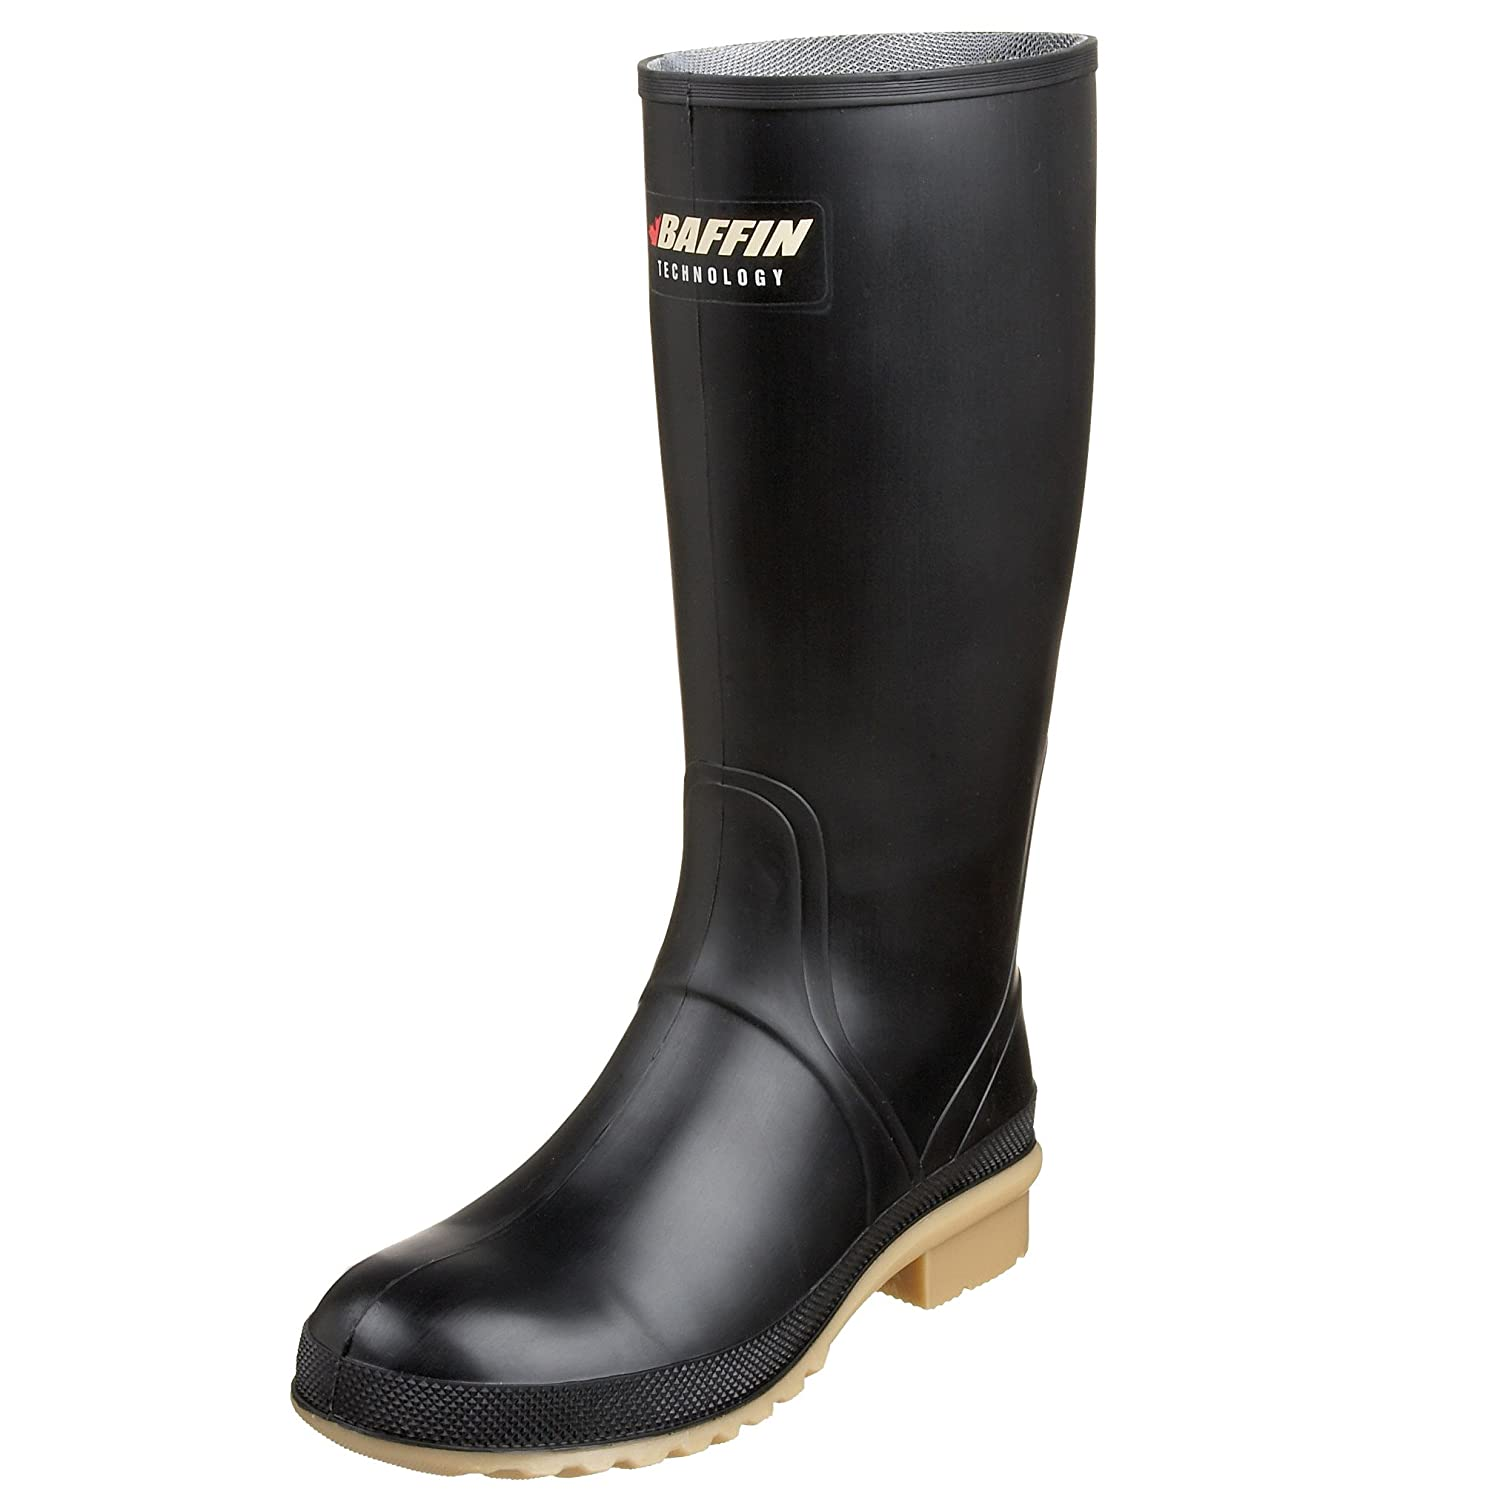 Baffin Women's Processor Canadian Made Industrial Rubber Boot B002BH4GQO 7 B(M) US|Black/Amber